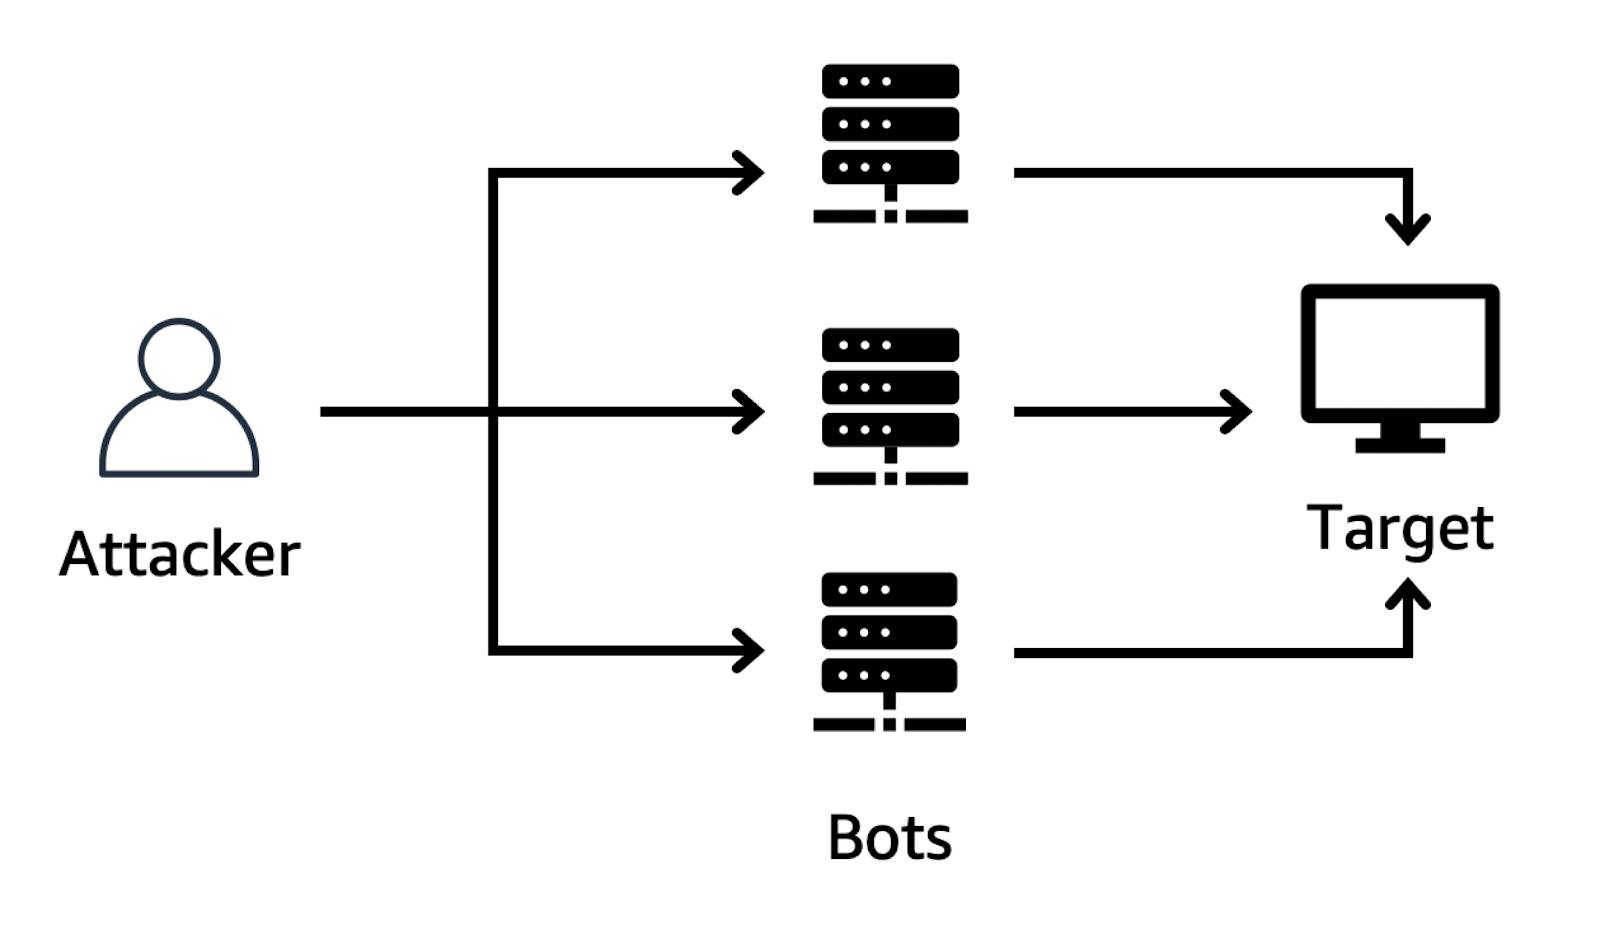 Diagram of a distributed denial-of-service (DDoS) attack, depicting a user on the left, who sends traffic to three bots, which then pass the traffic onto the target with three separate arrows